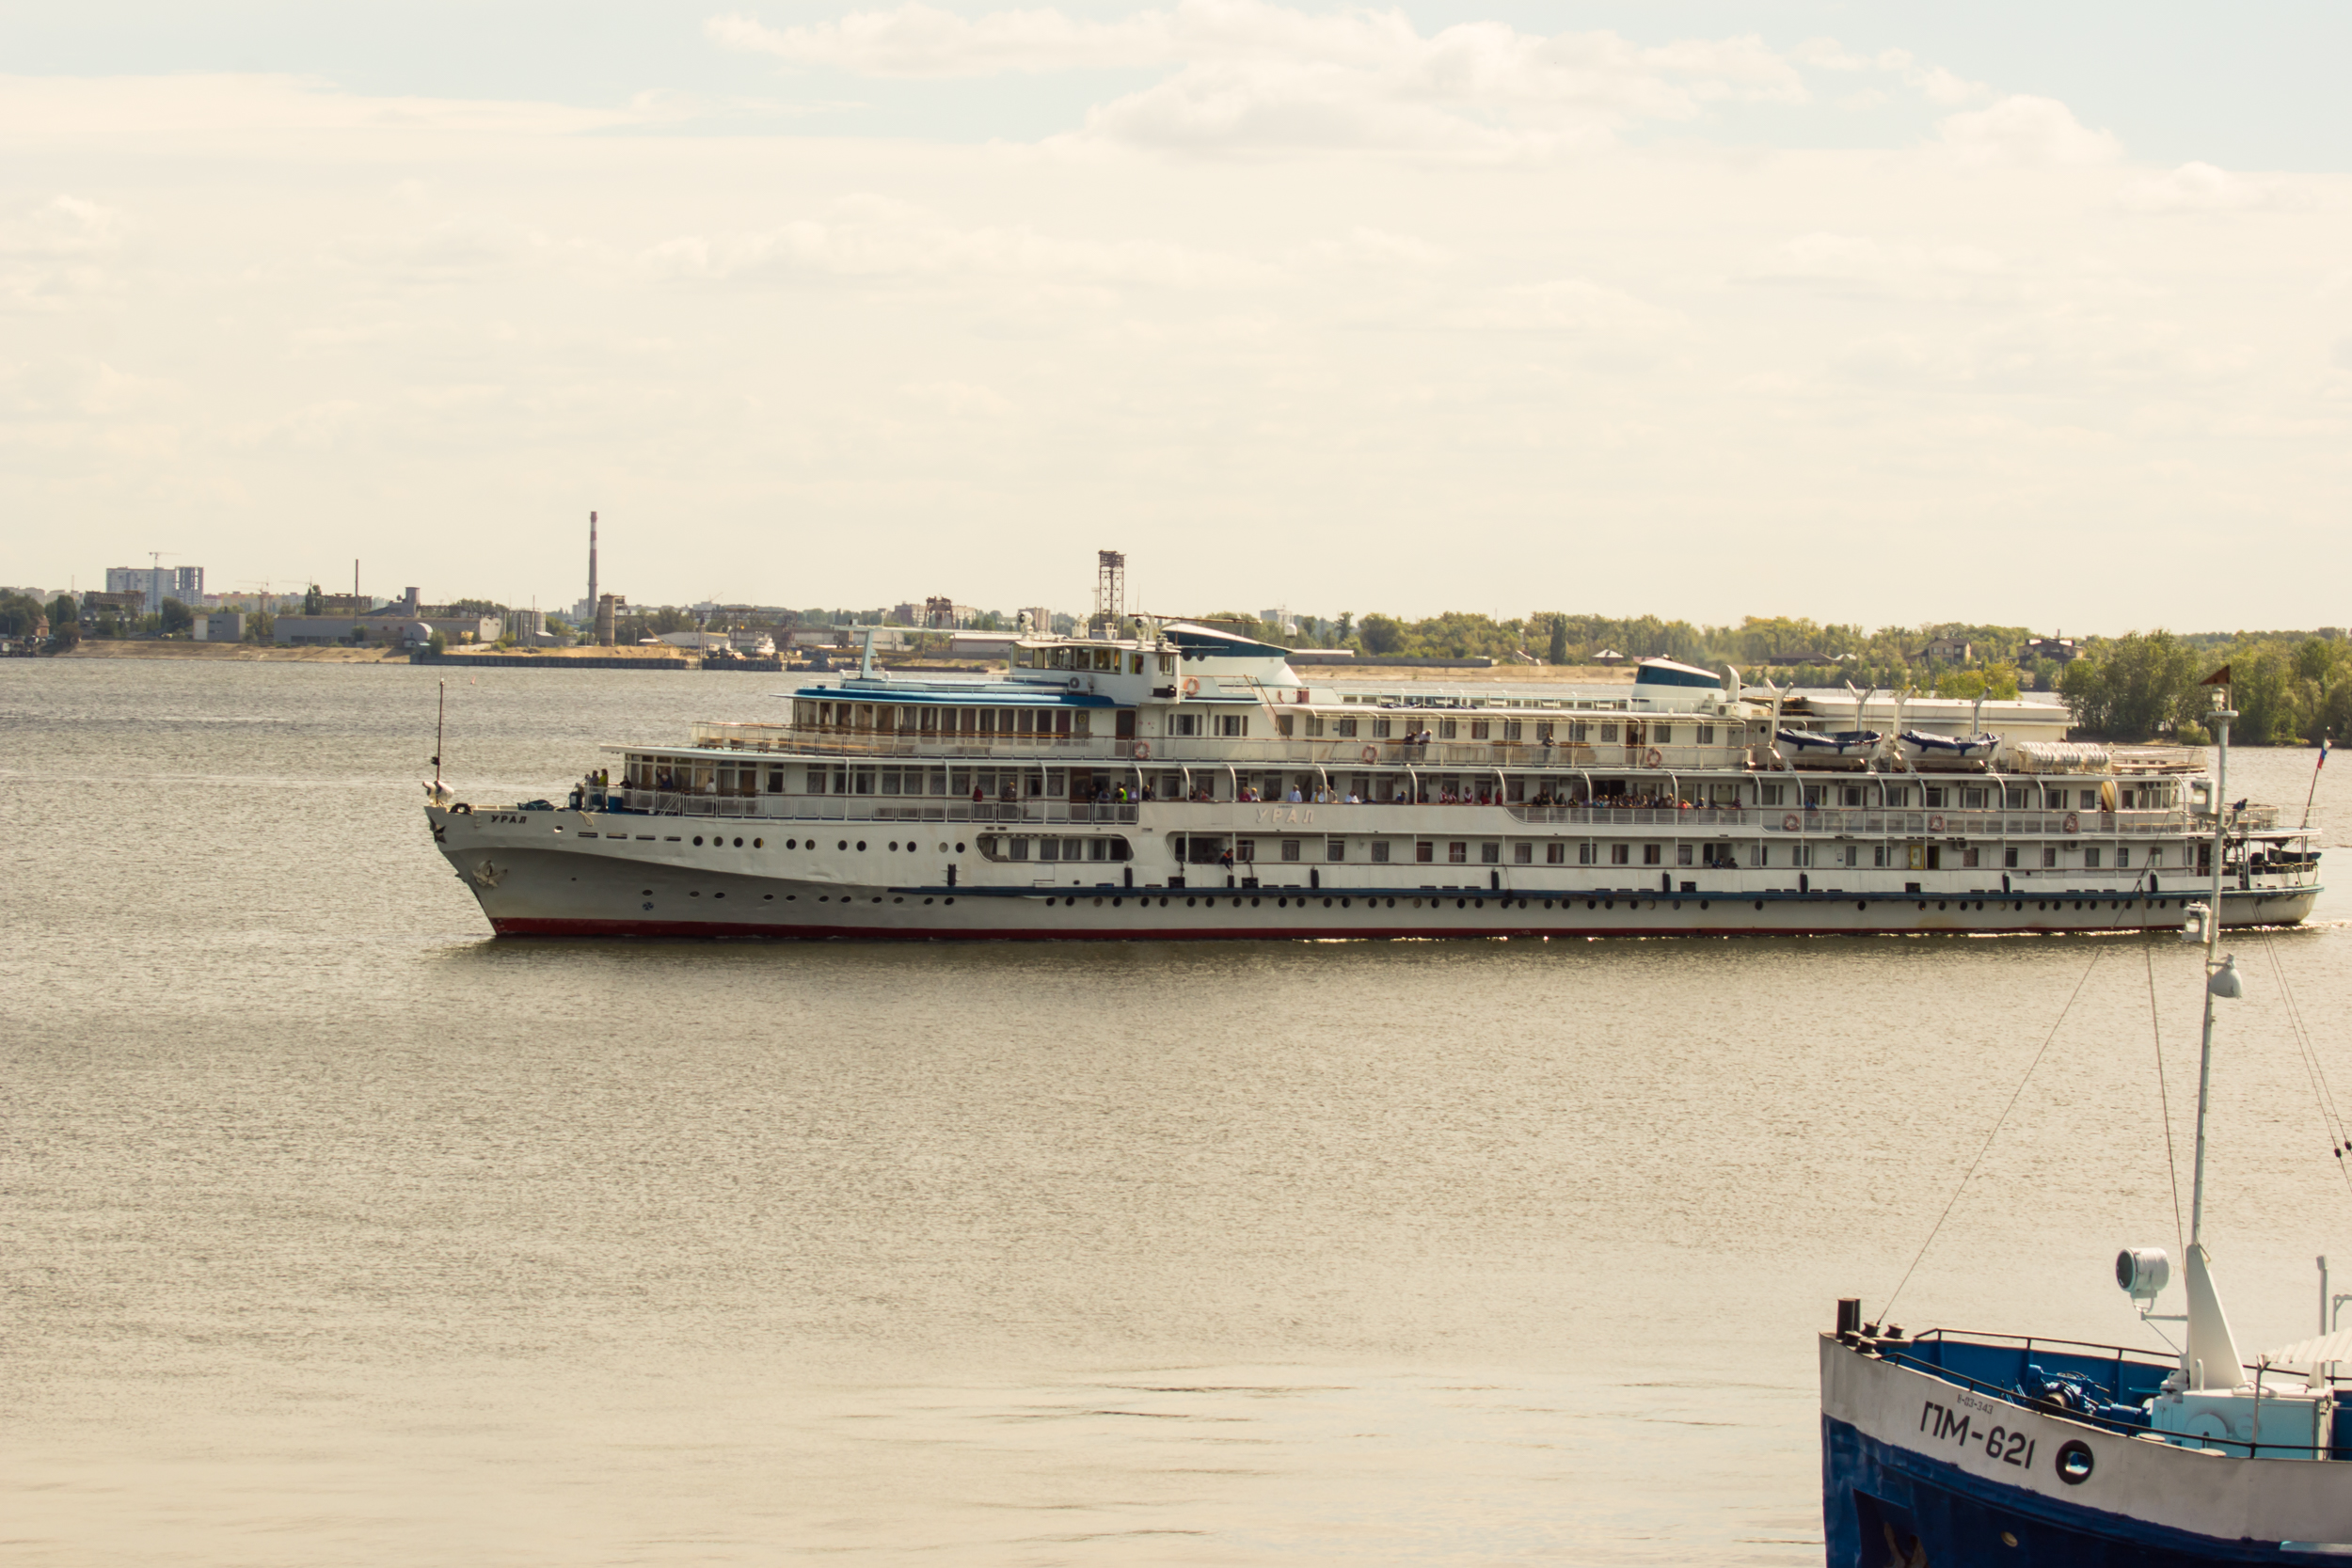 Saratov in recent years attracts tourists. Tourist ships arrive daily in the city.